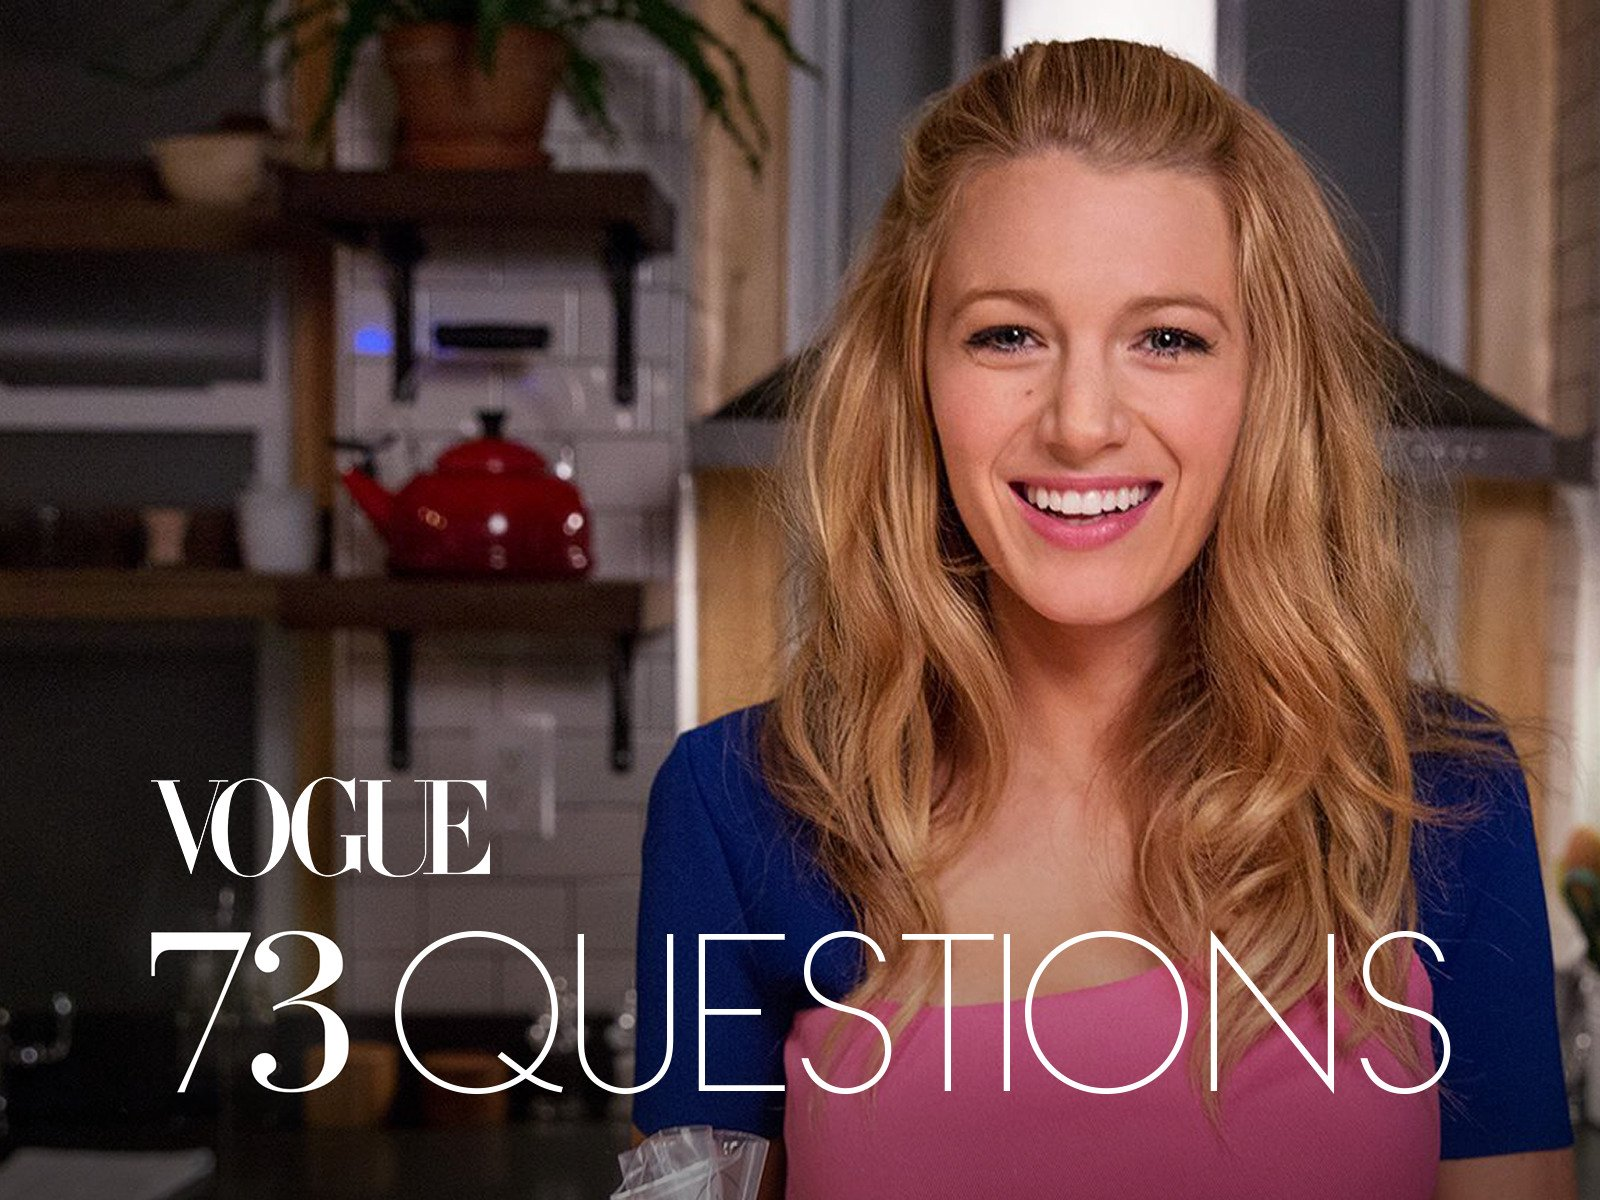 73 Questions Answered By Your Favorite Celebs - Season 2